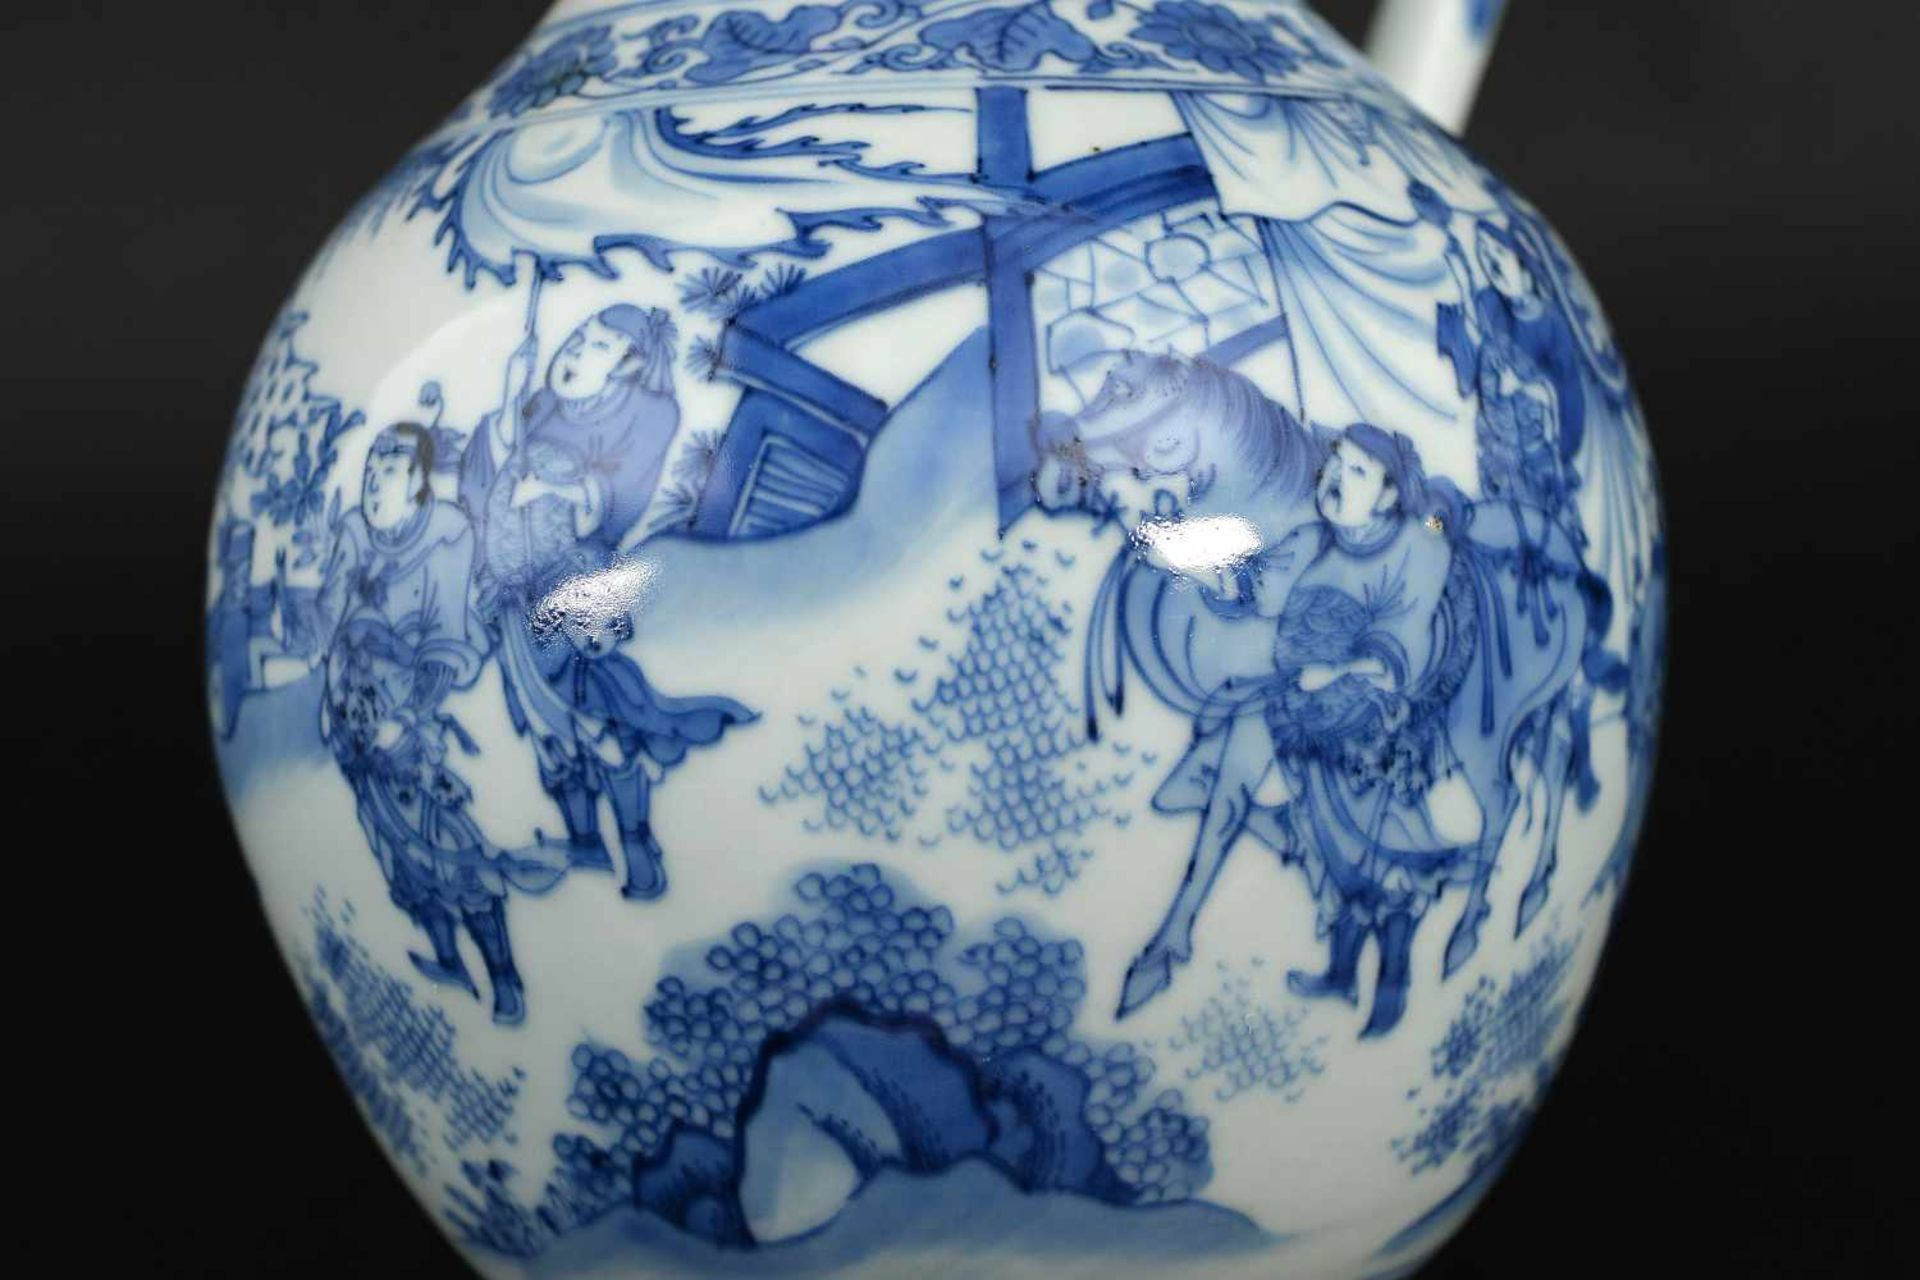 A blue and white porcelain jug, decorated with figures, a river landscape and flowers. Unmarked. - Bild 4 aus 9